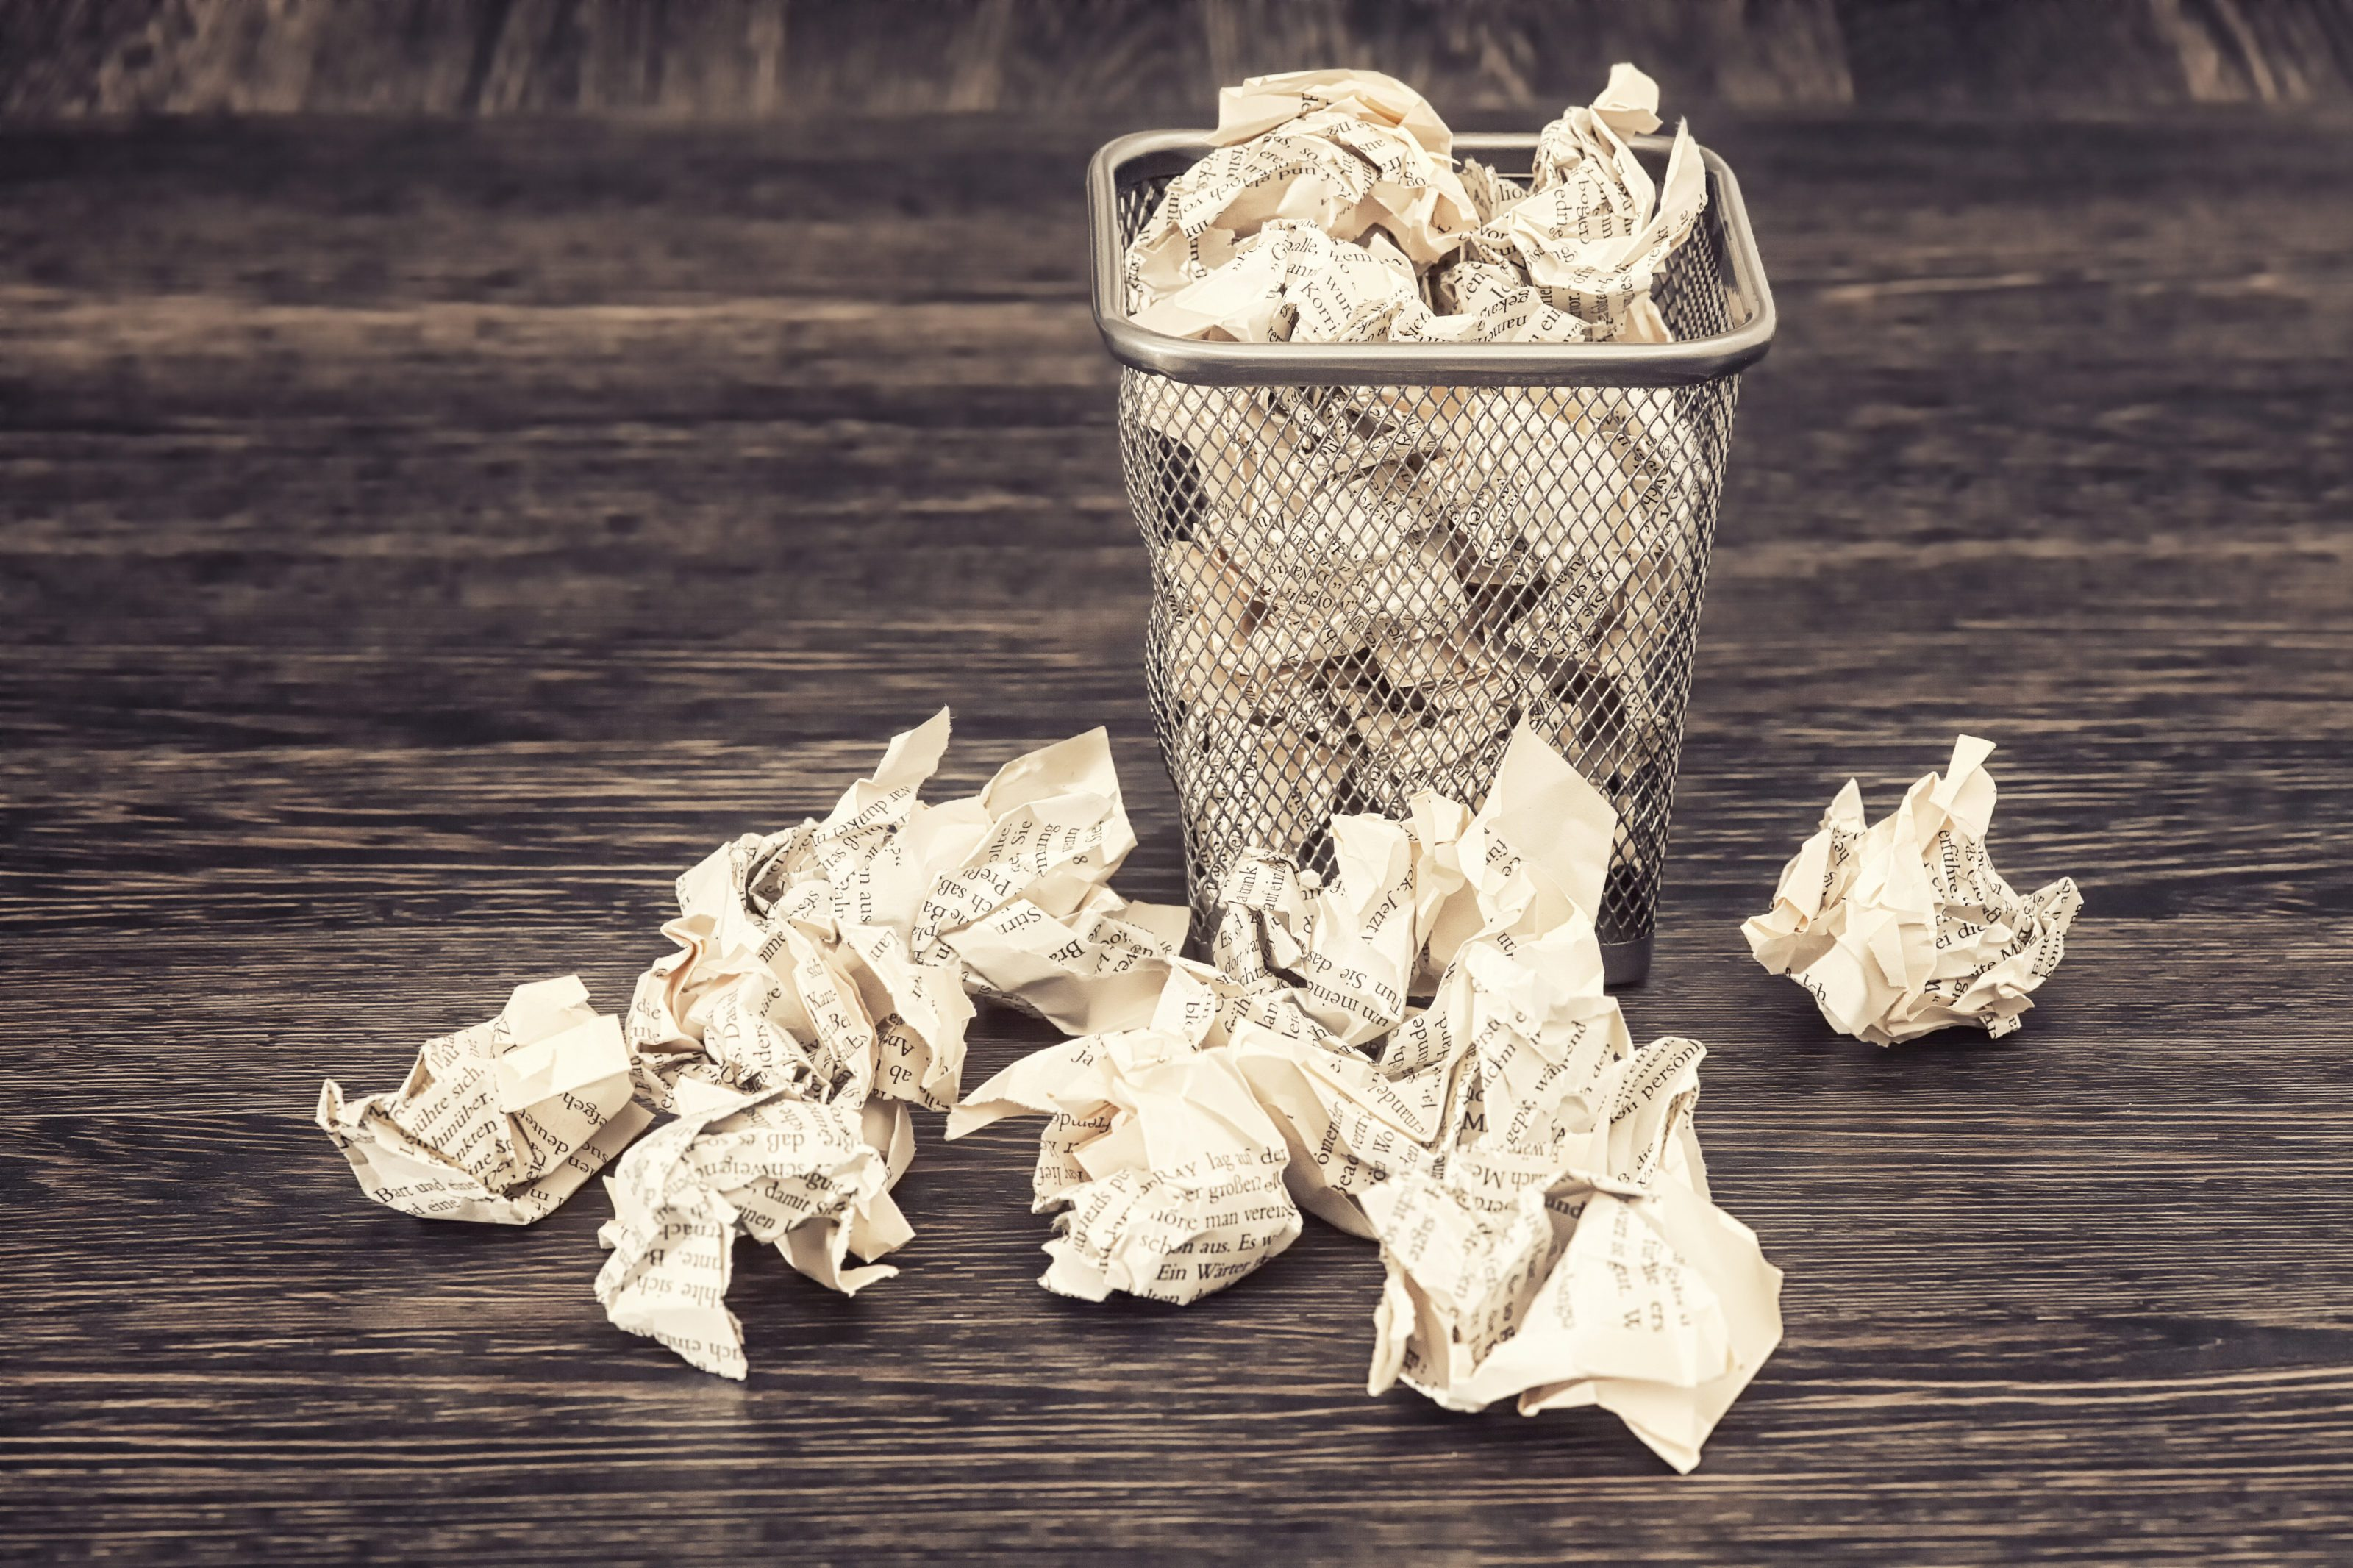 Top Tips To Avoid Spam Filters When Sending Emails